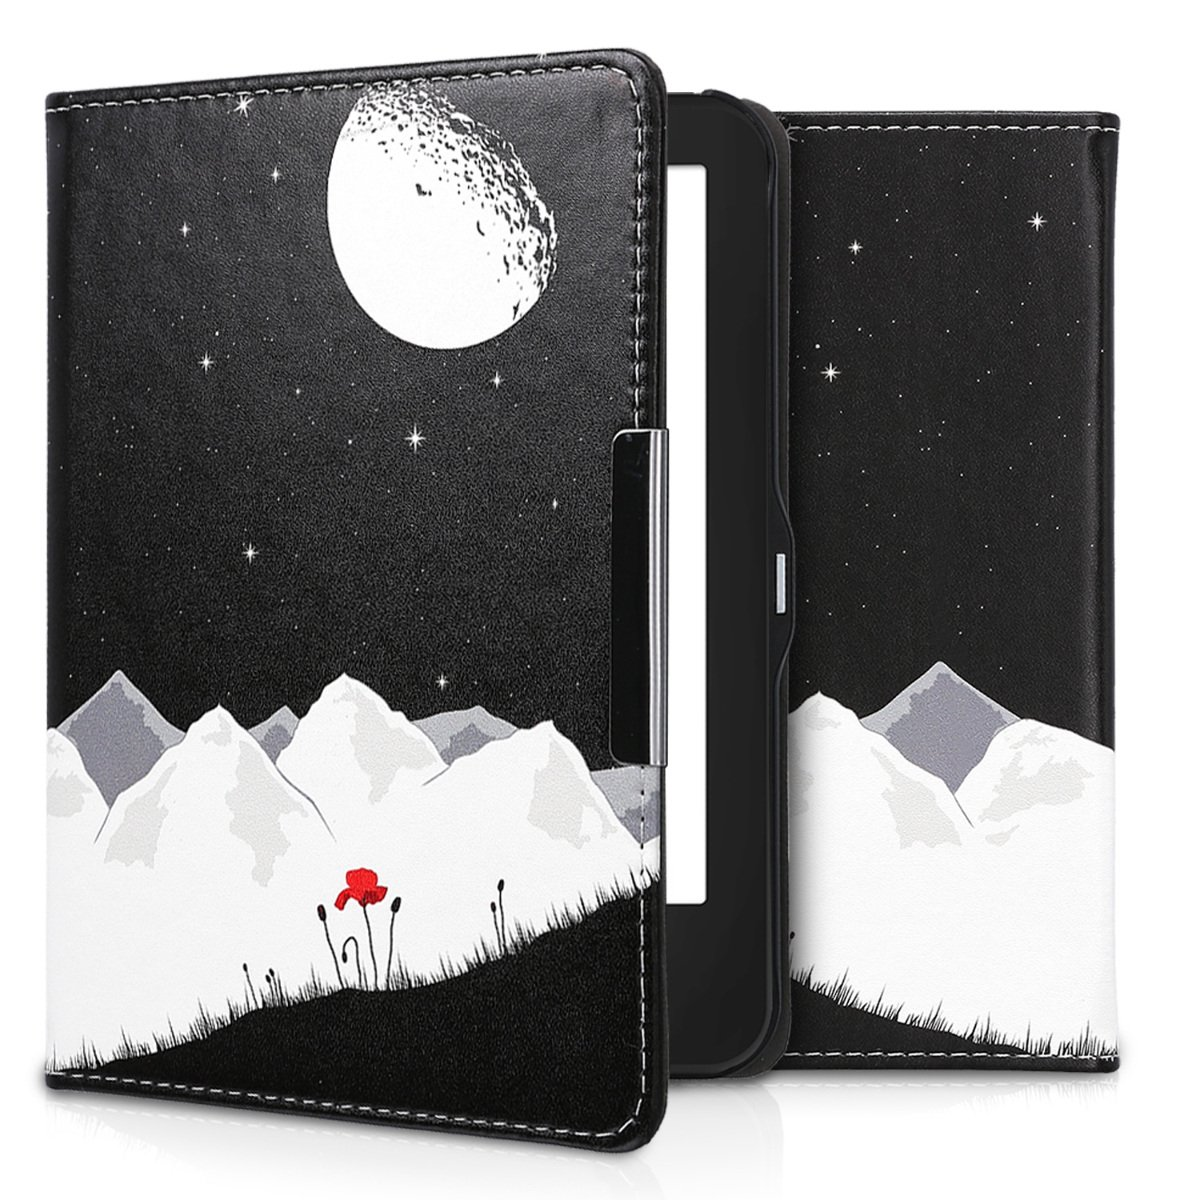 kwmobile Elegant synthetic leather case for the Tolino Vision 1/2/3/4 HD Starry Sky Poppy in white red black